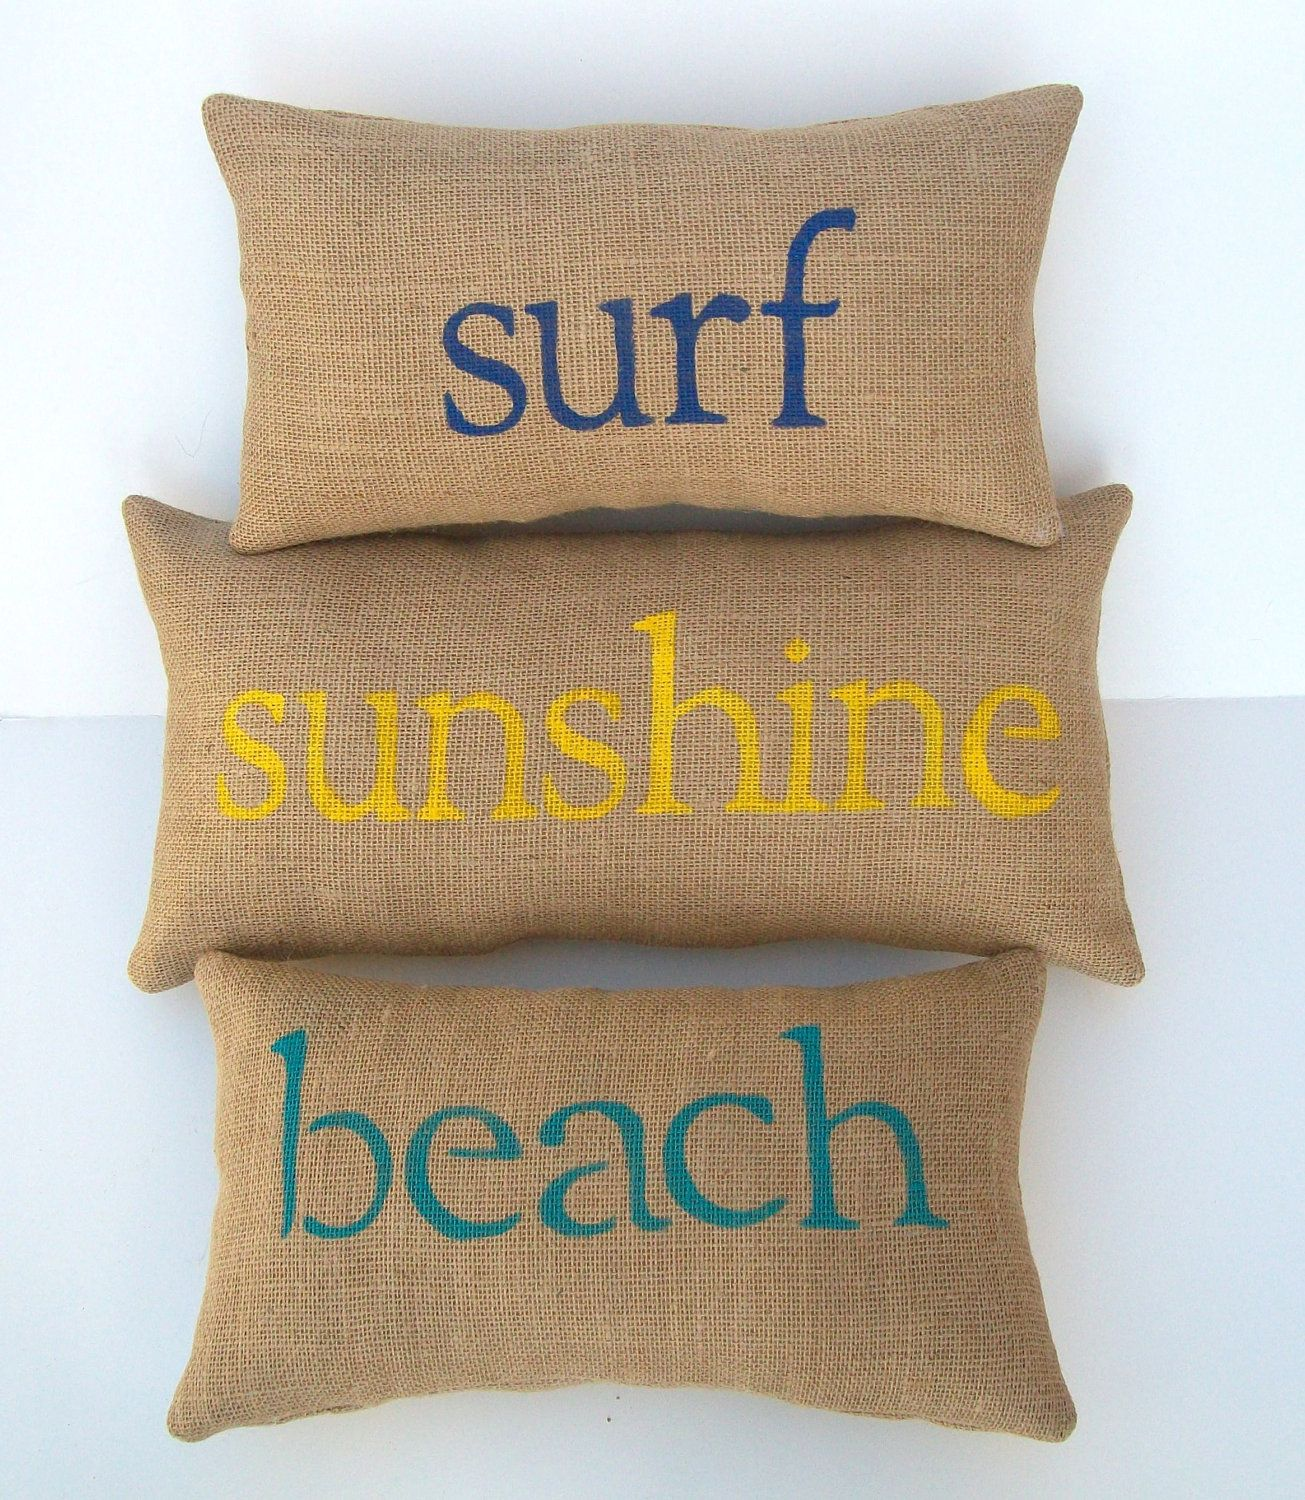 Items similar to Burlap pillows, beach, surf, sunshine, decorative pillows, set of 3 by whimsysweetwhimsy on Etsy